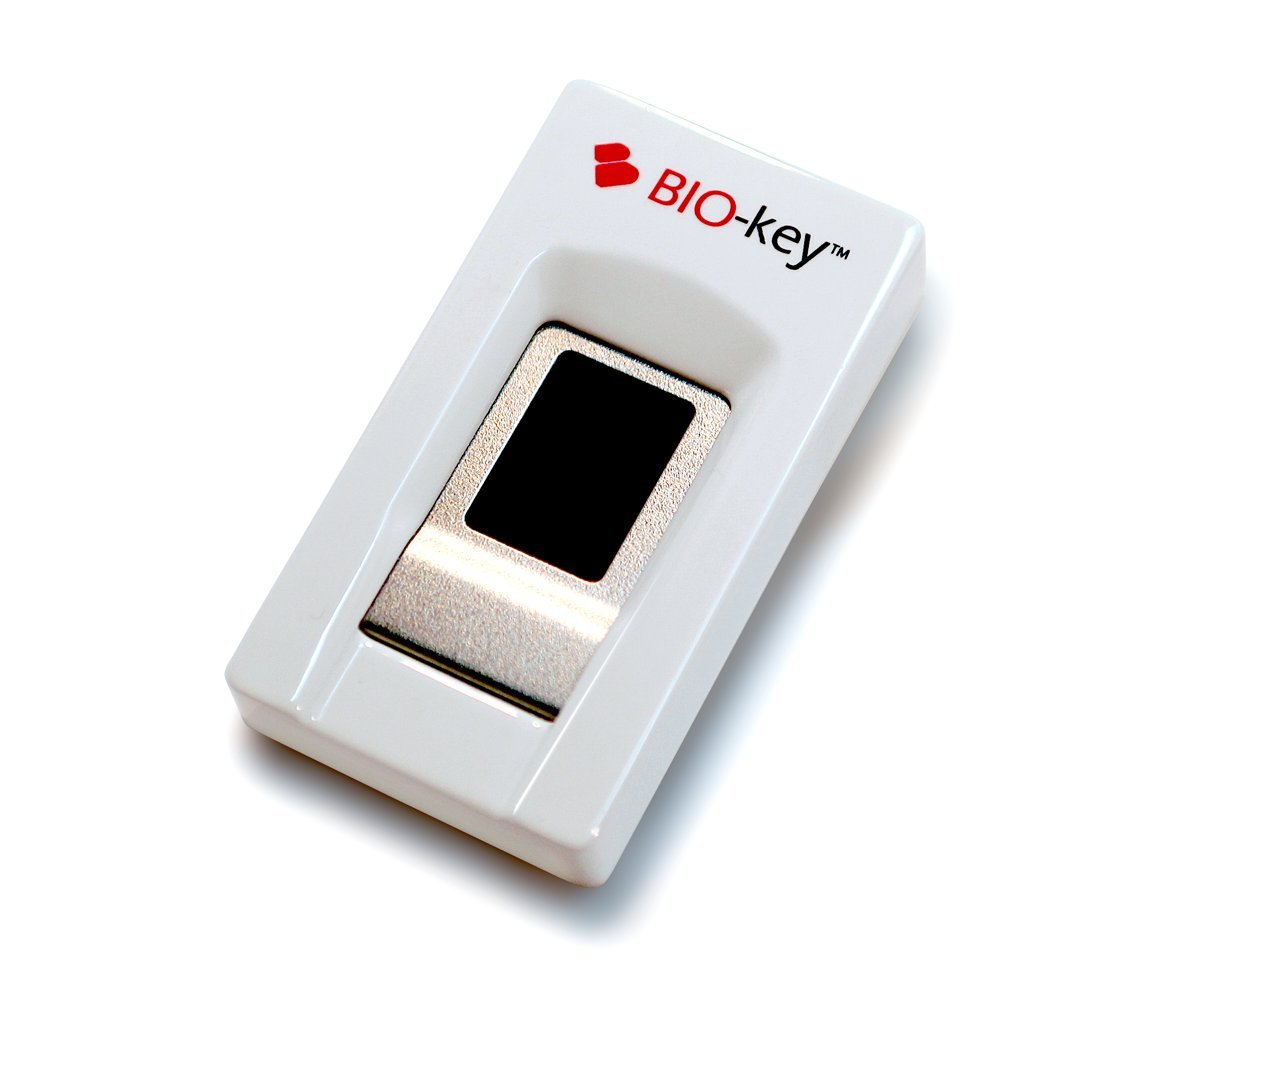 BIO-key EcoID Fingerprint Reader - Tested & Qualified by Microsoft for Windows Hello - Eliminate Passwords on Windows 7/8.1/10 - Includes OmniPass Online Password Vault with Purchase